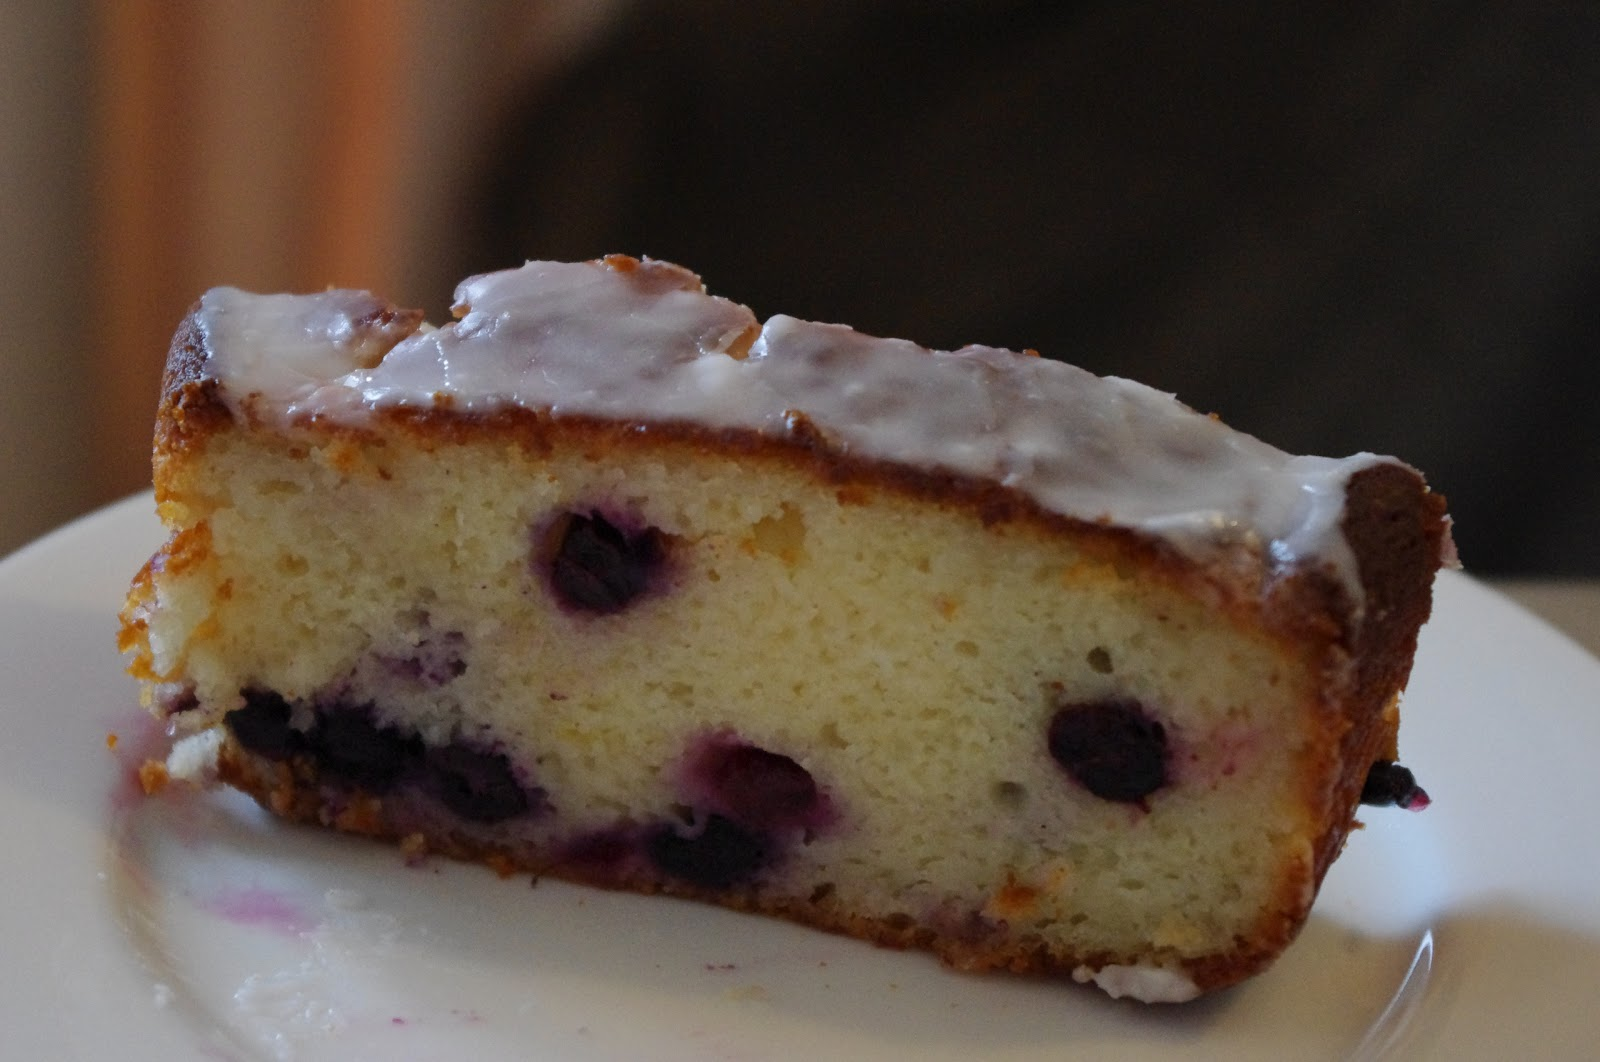 Lemon and Blueberry Greek Yogurt Cake